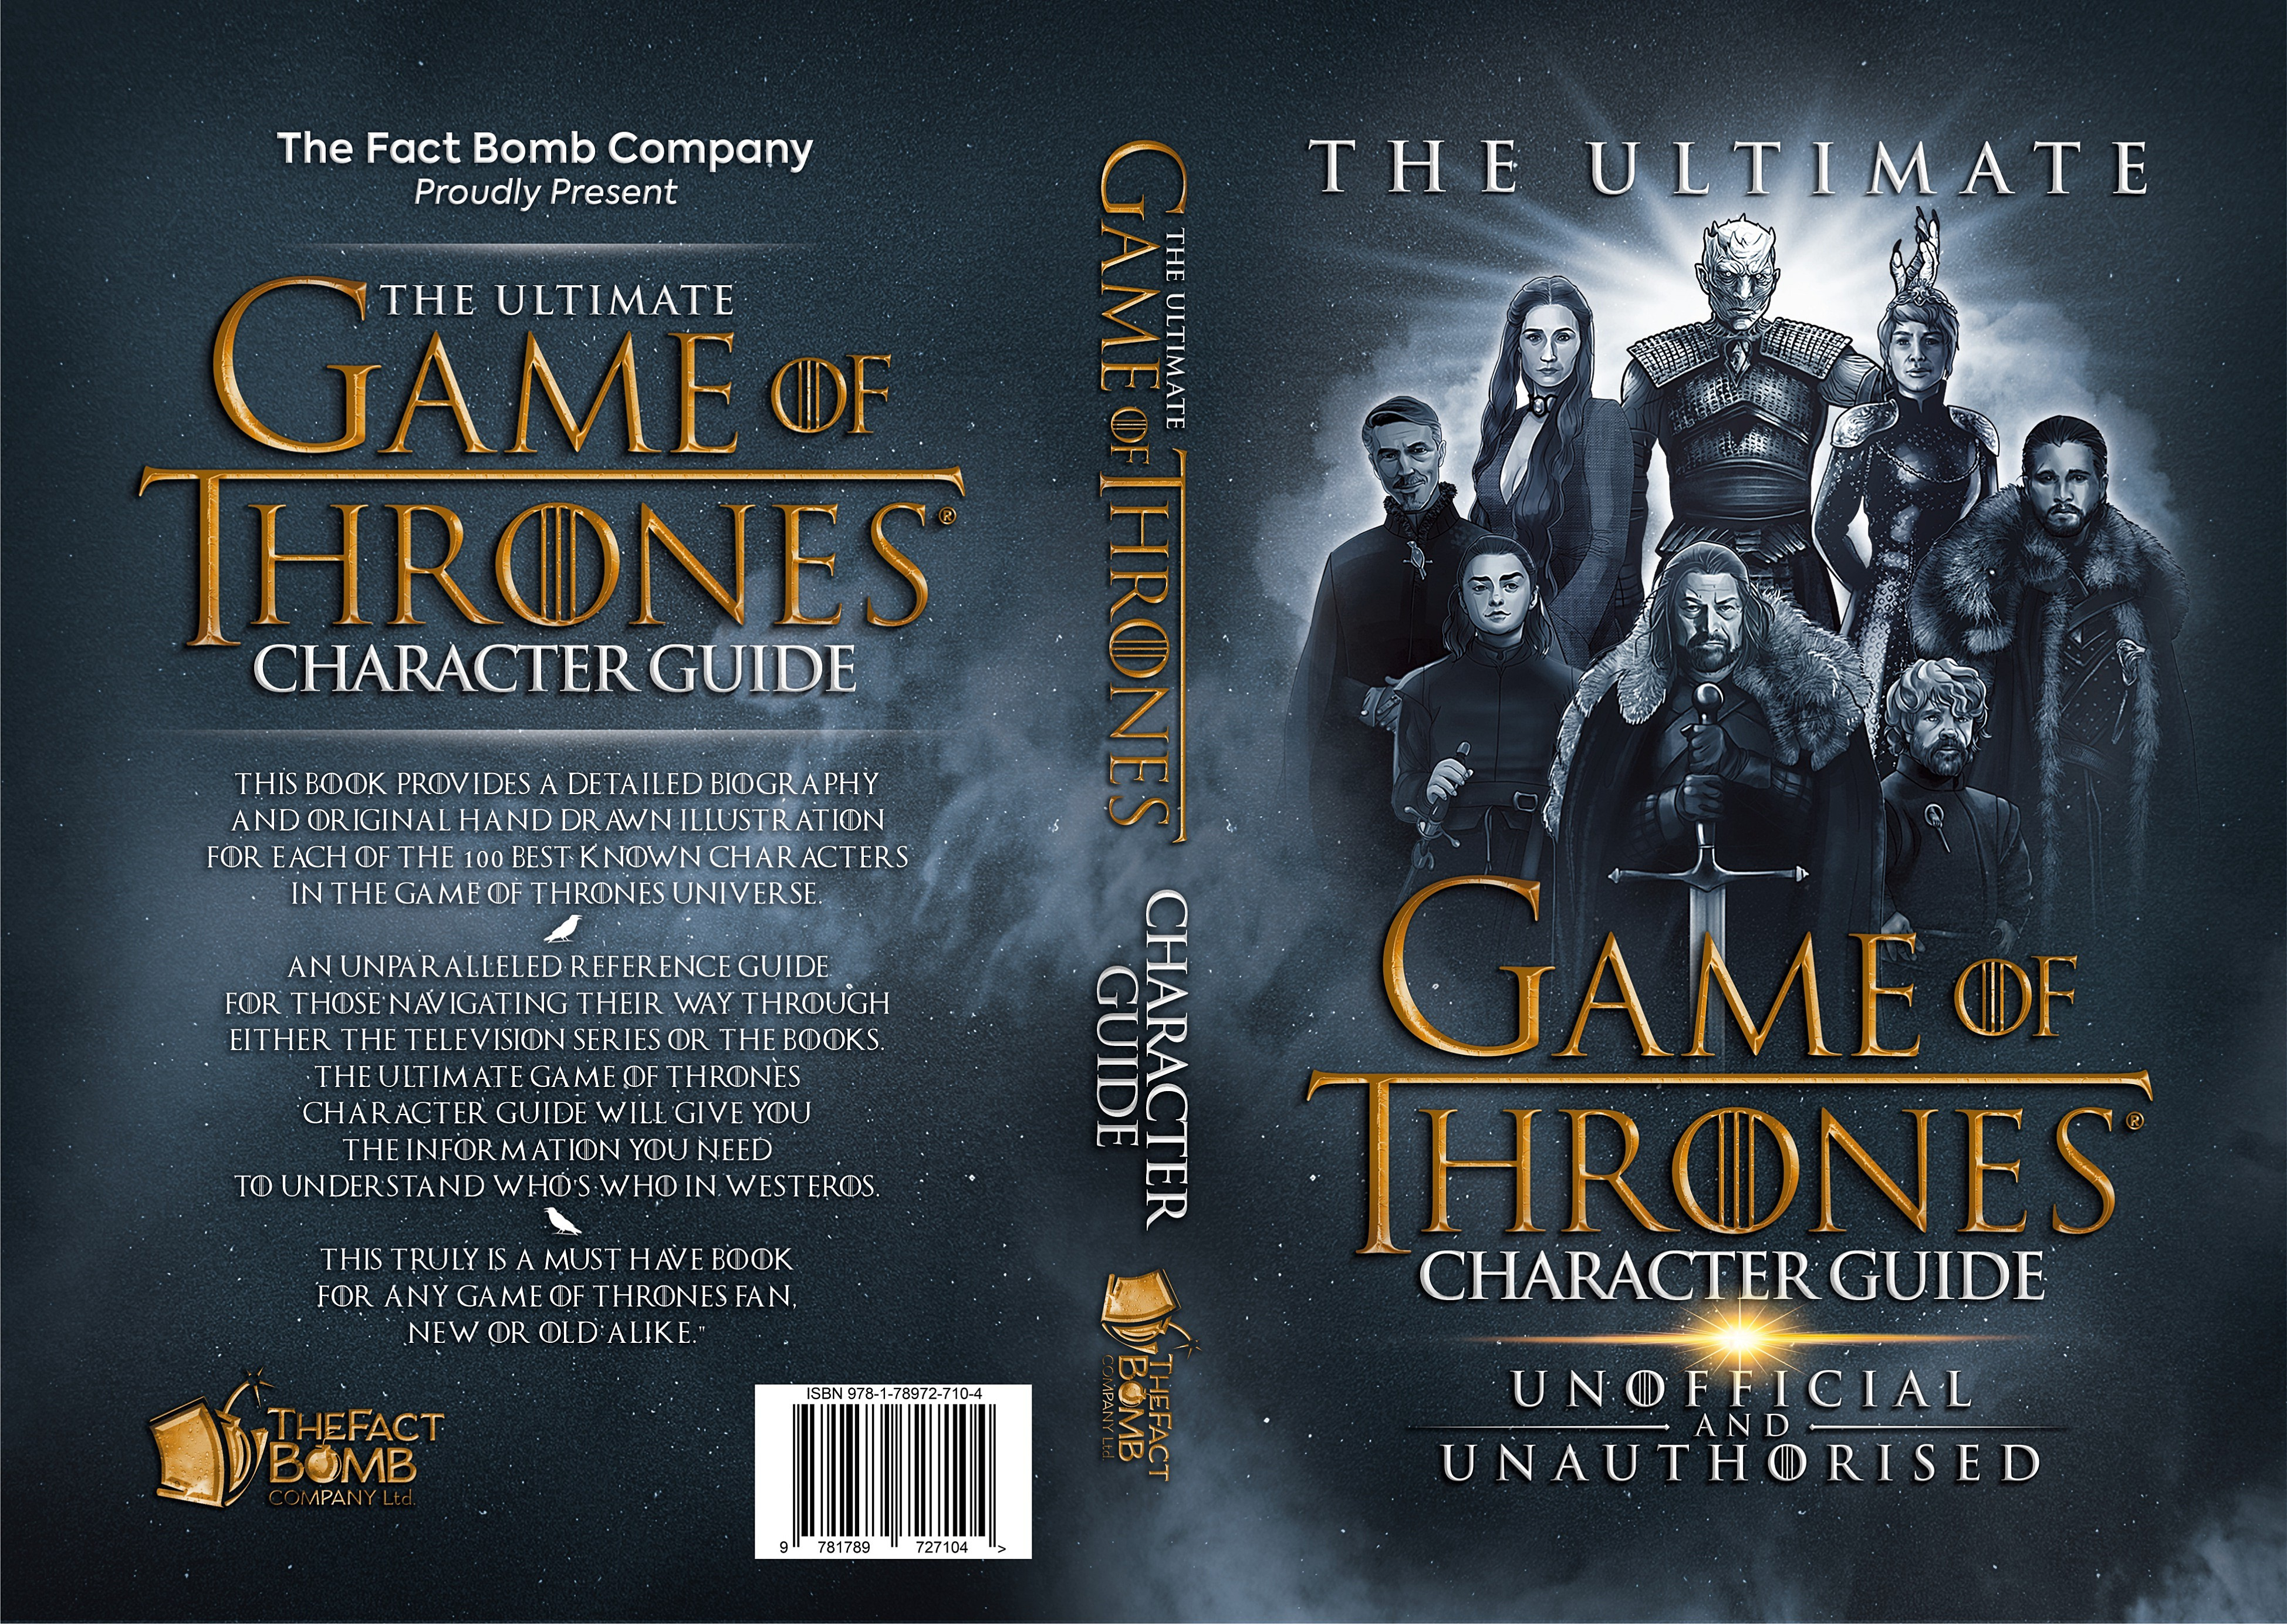 The Ultimate Game of Thrones Character Guide